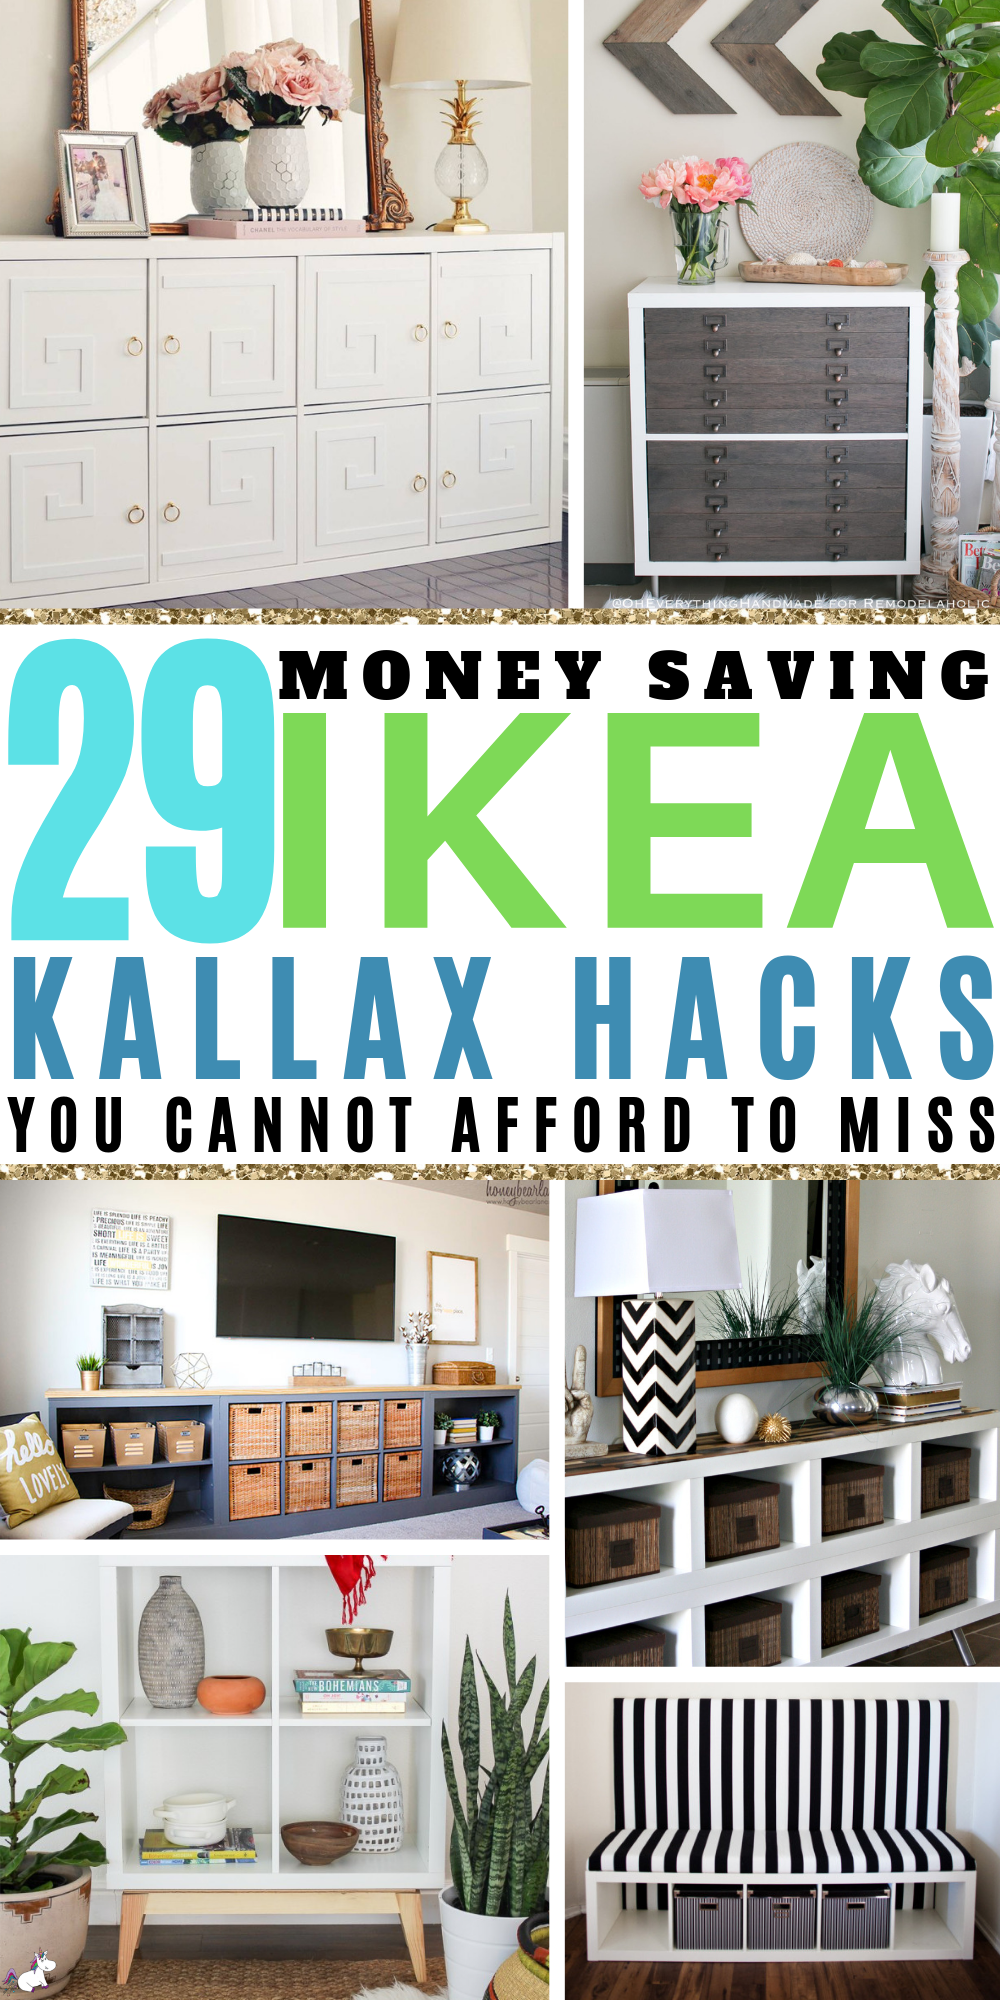 29 Money Saving Ikea Kallax Hacks That Will Blow Your Mind! Thes budget home decor hacks will help you get organized & make your home look fabulous ona budget! #ikeahack #kallaxhacks #kallax #ikea #creativediyprojects #organizing